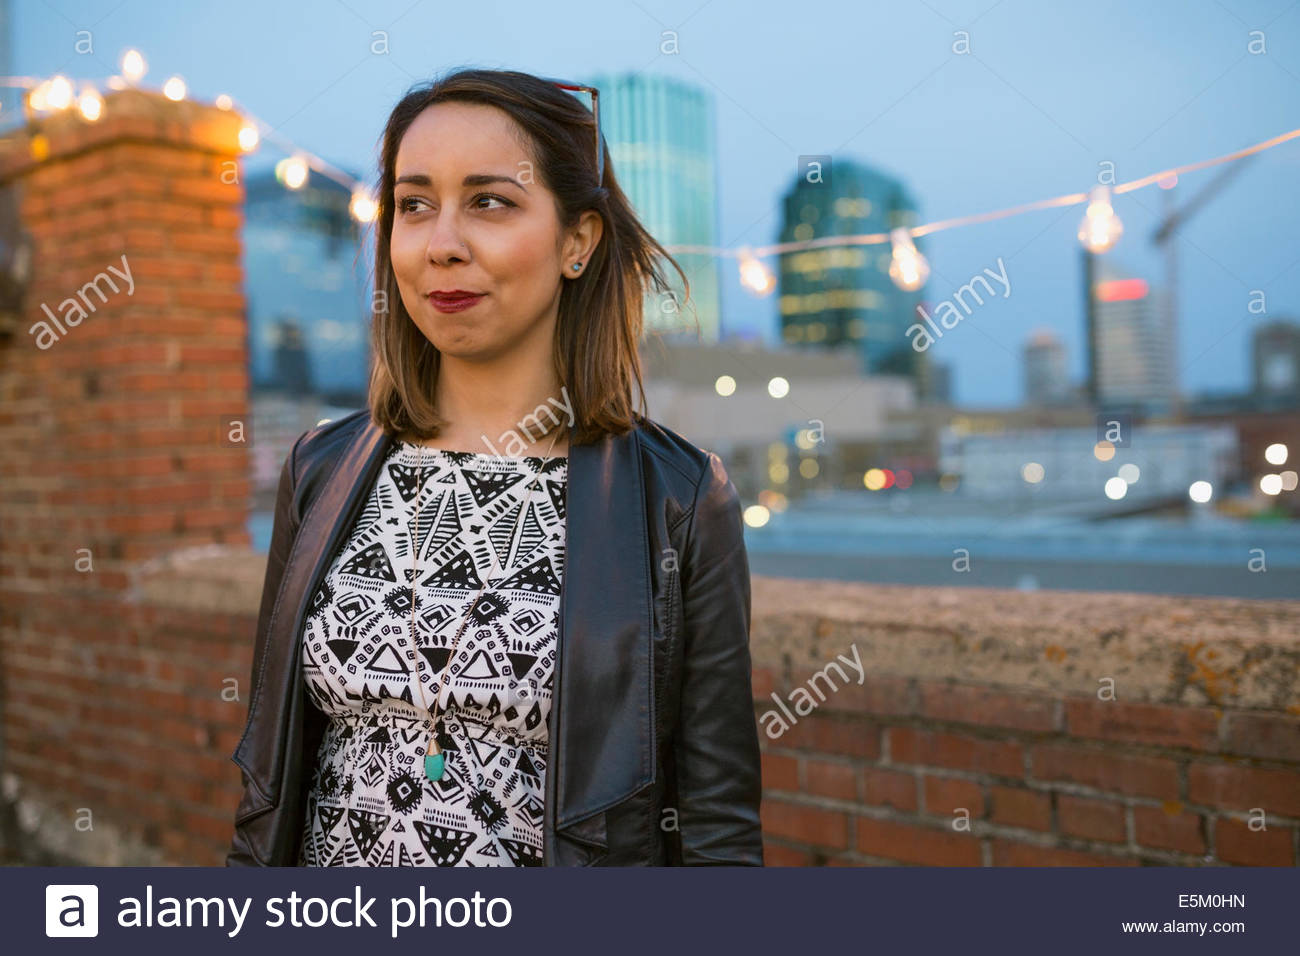 Smiling woman looking away on urban rooftop Stock Photo